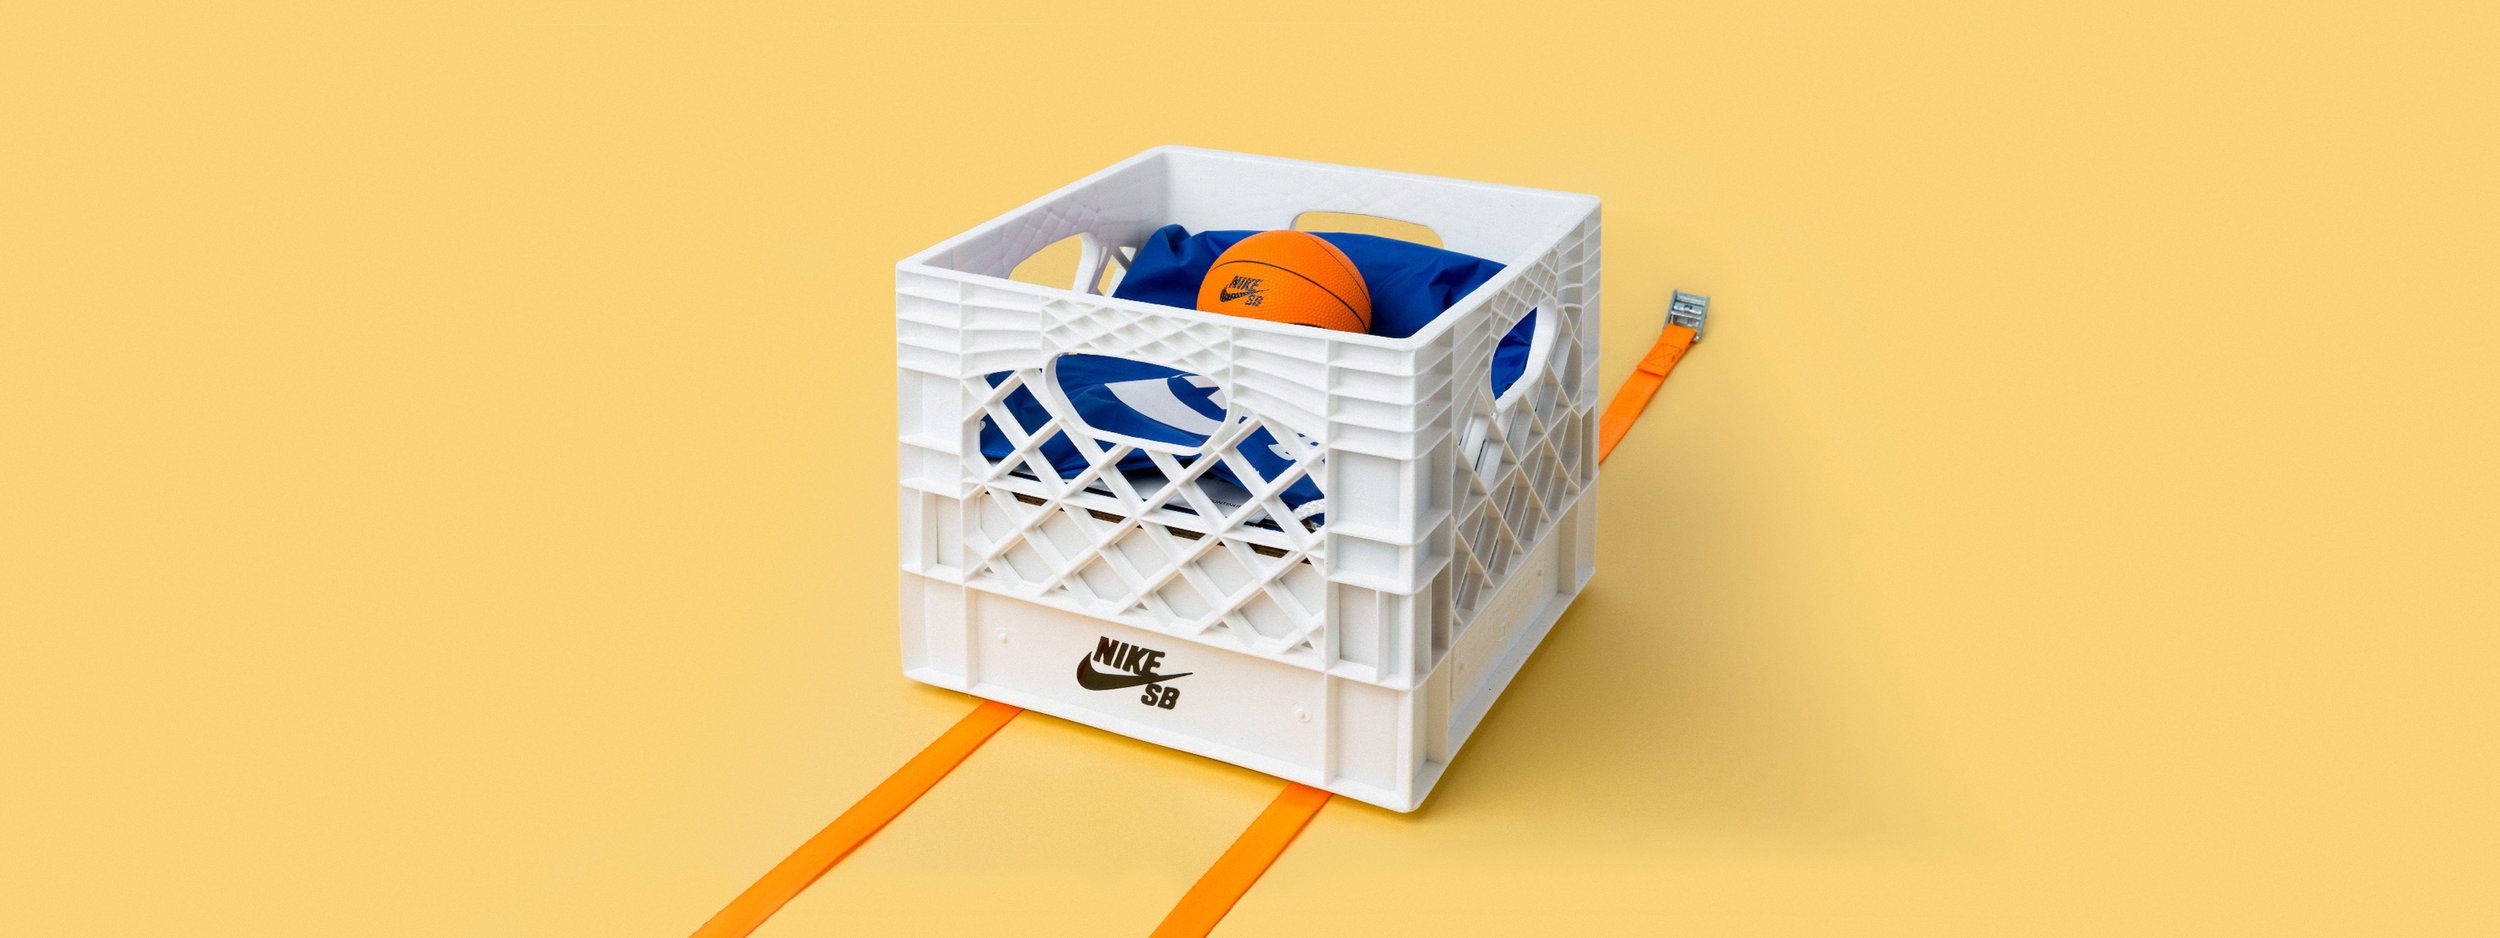 custom fabrication, milk crate, shoe box, CNC cutting, Nike SB seeding kit, portland, OR, basketball hoop, indoor, collapsible